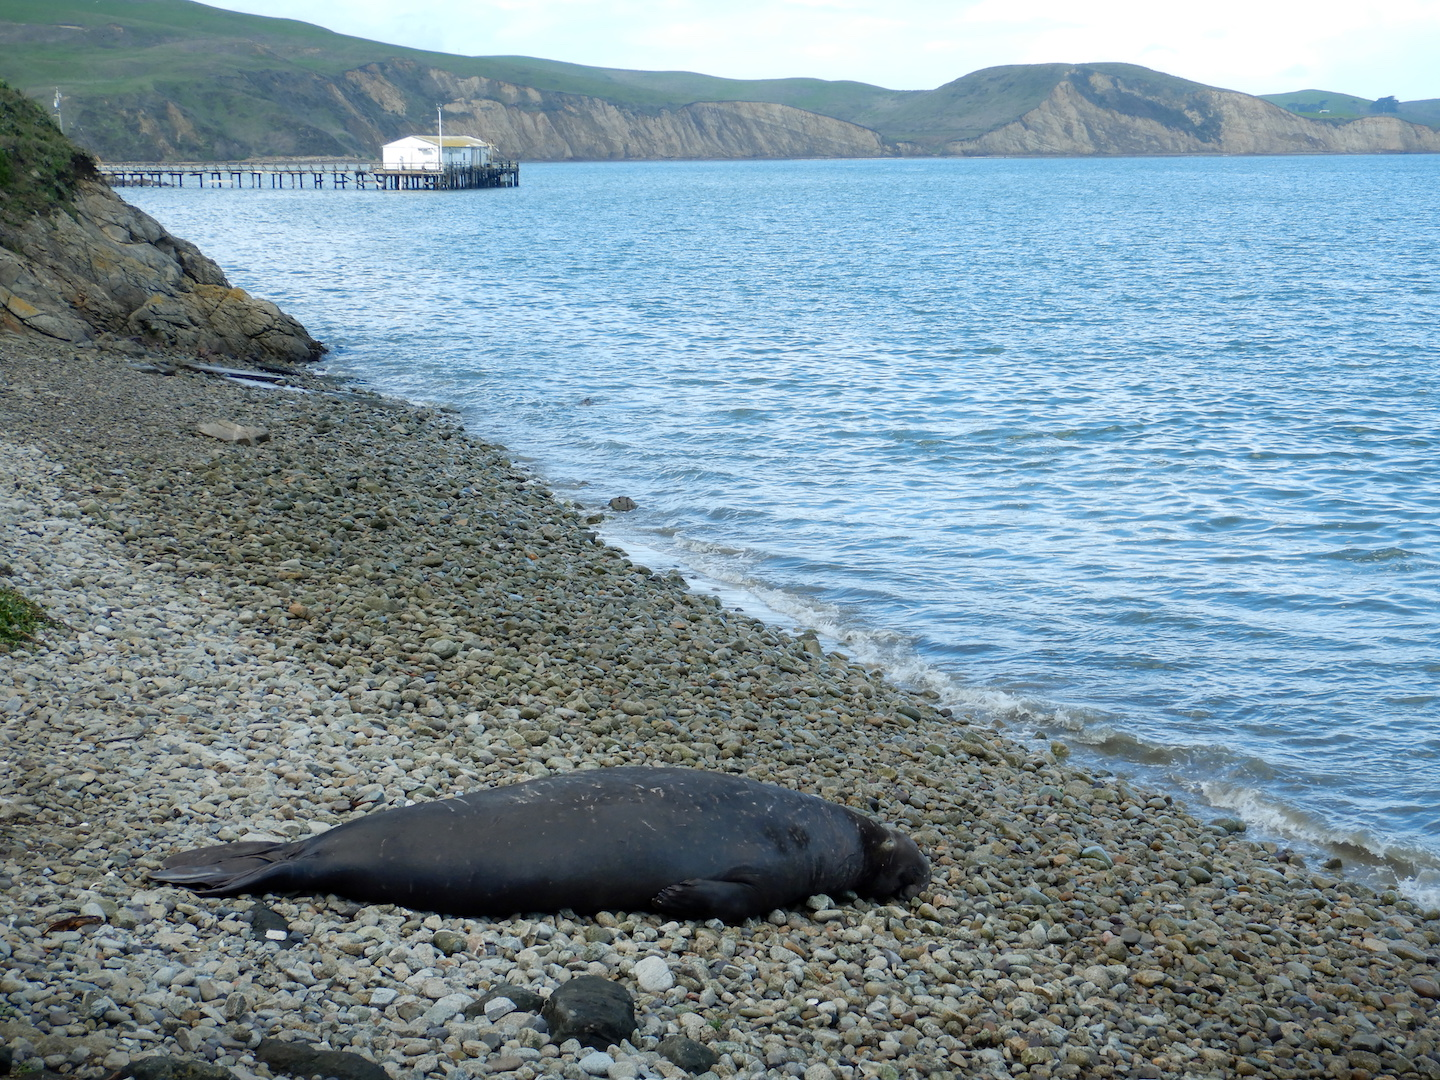 seal resting on cobble beach, dock and boathouse in background